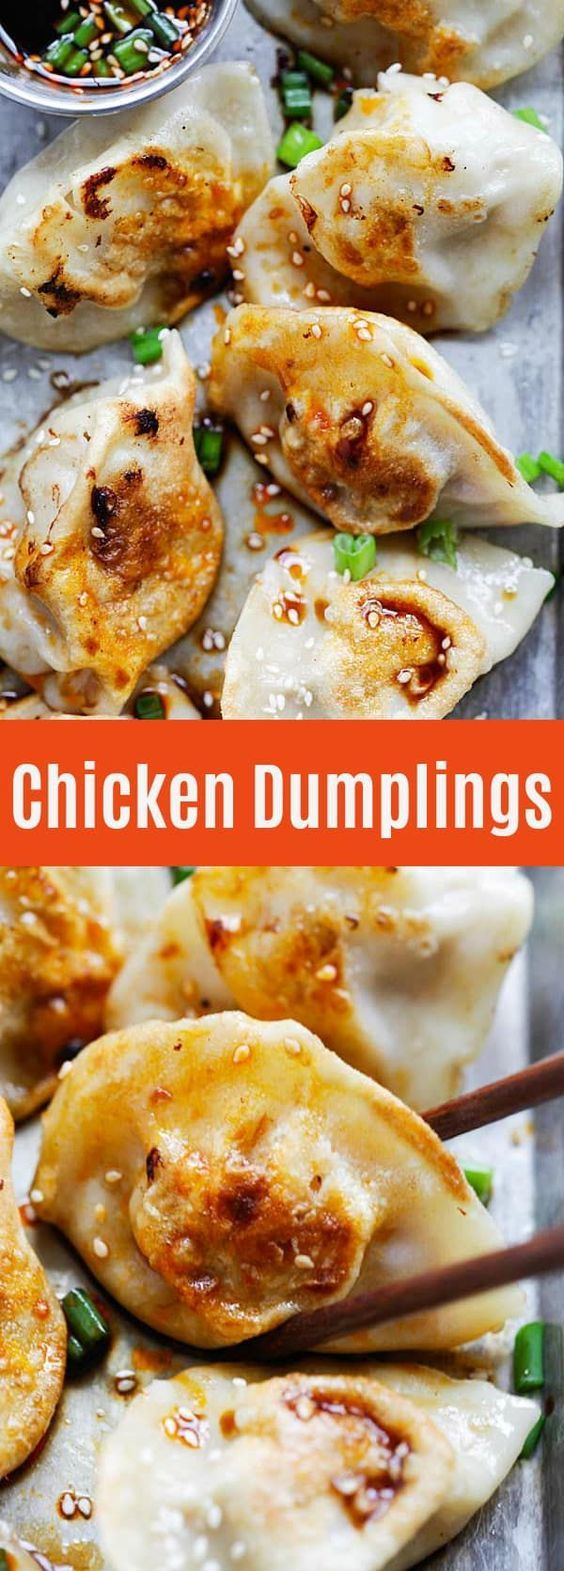 Photo of Chicken Dumplings